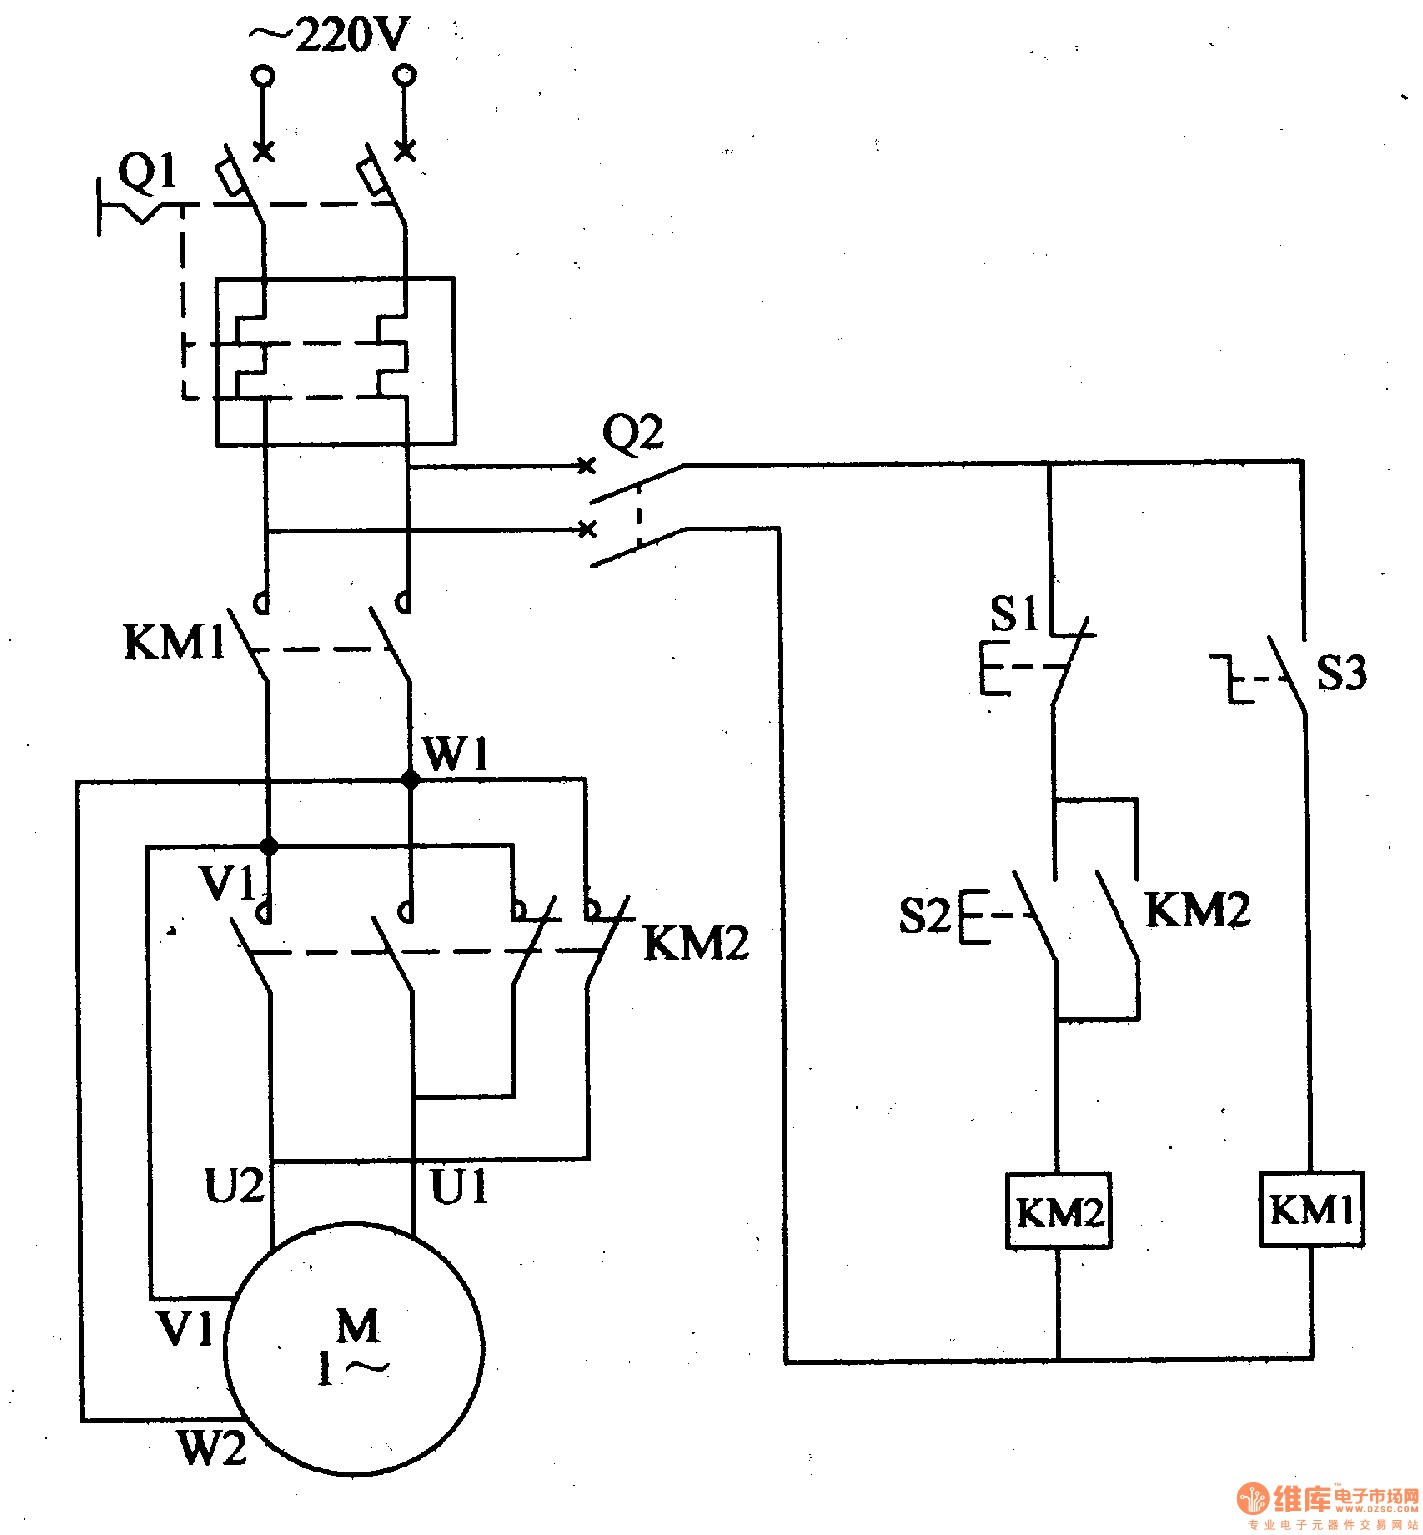 Square D Motor Control Center Wiring Diagram the Wiring Diagram for ...